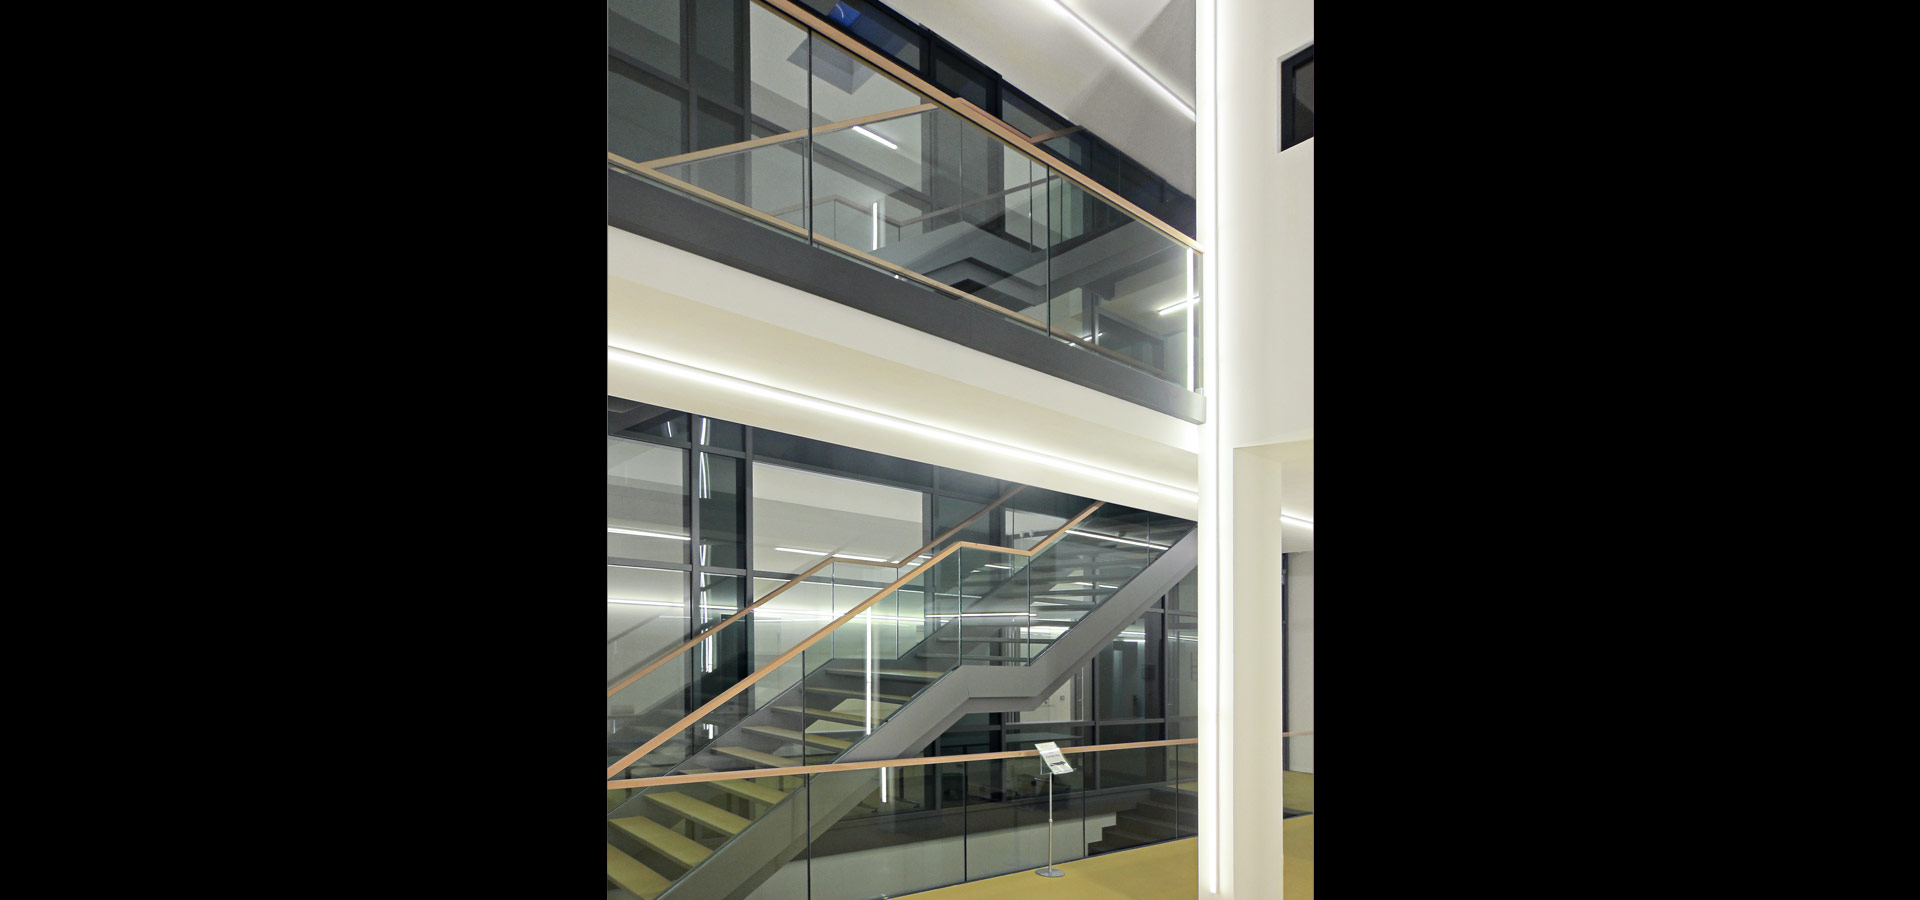 Luxsystem Helmholtz light line 20.2 emergency lighting for corridors in public spaces